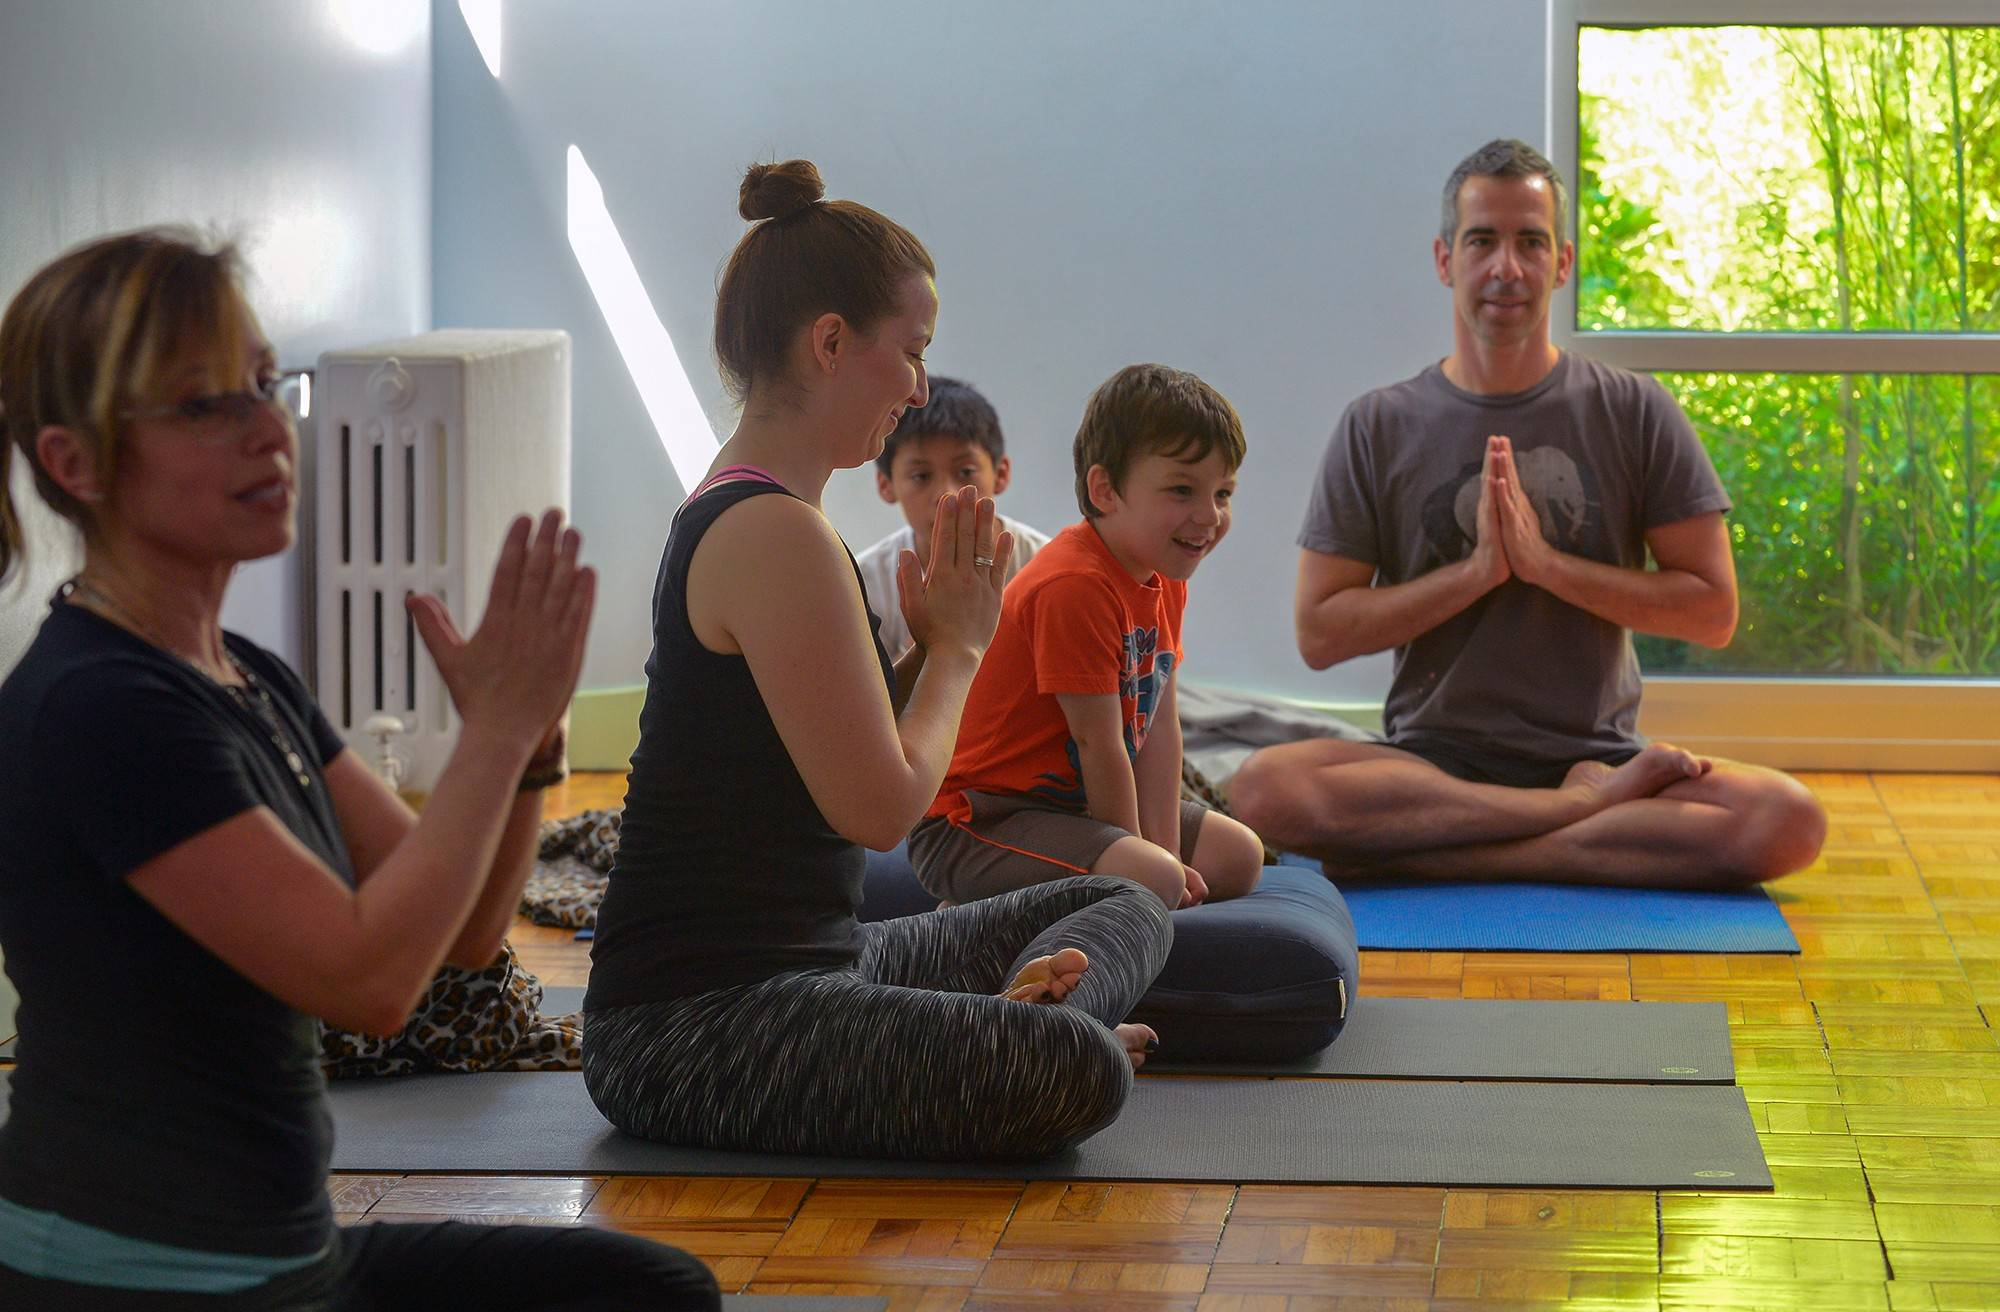 Linda Feldman, left, leads a family class at Circle Yoga in Washington. Elias OíKeefe and mom Deanna Ortiz, center, and Tristan Eckert and dad Christopher Sperl participate.